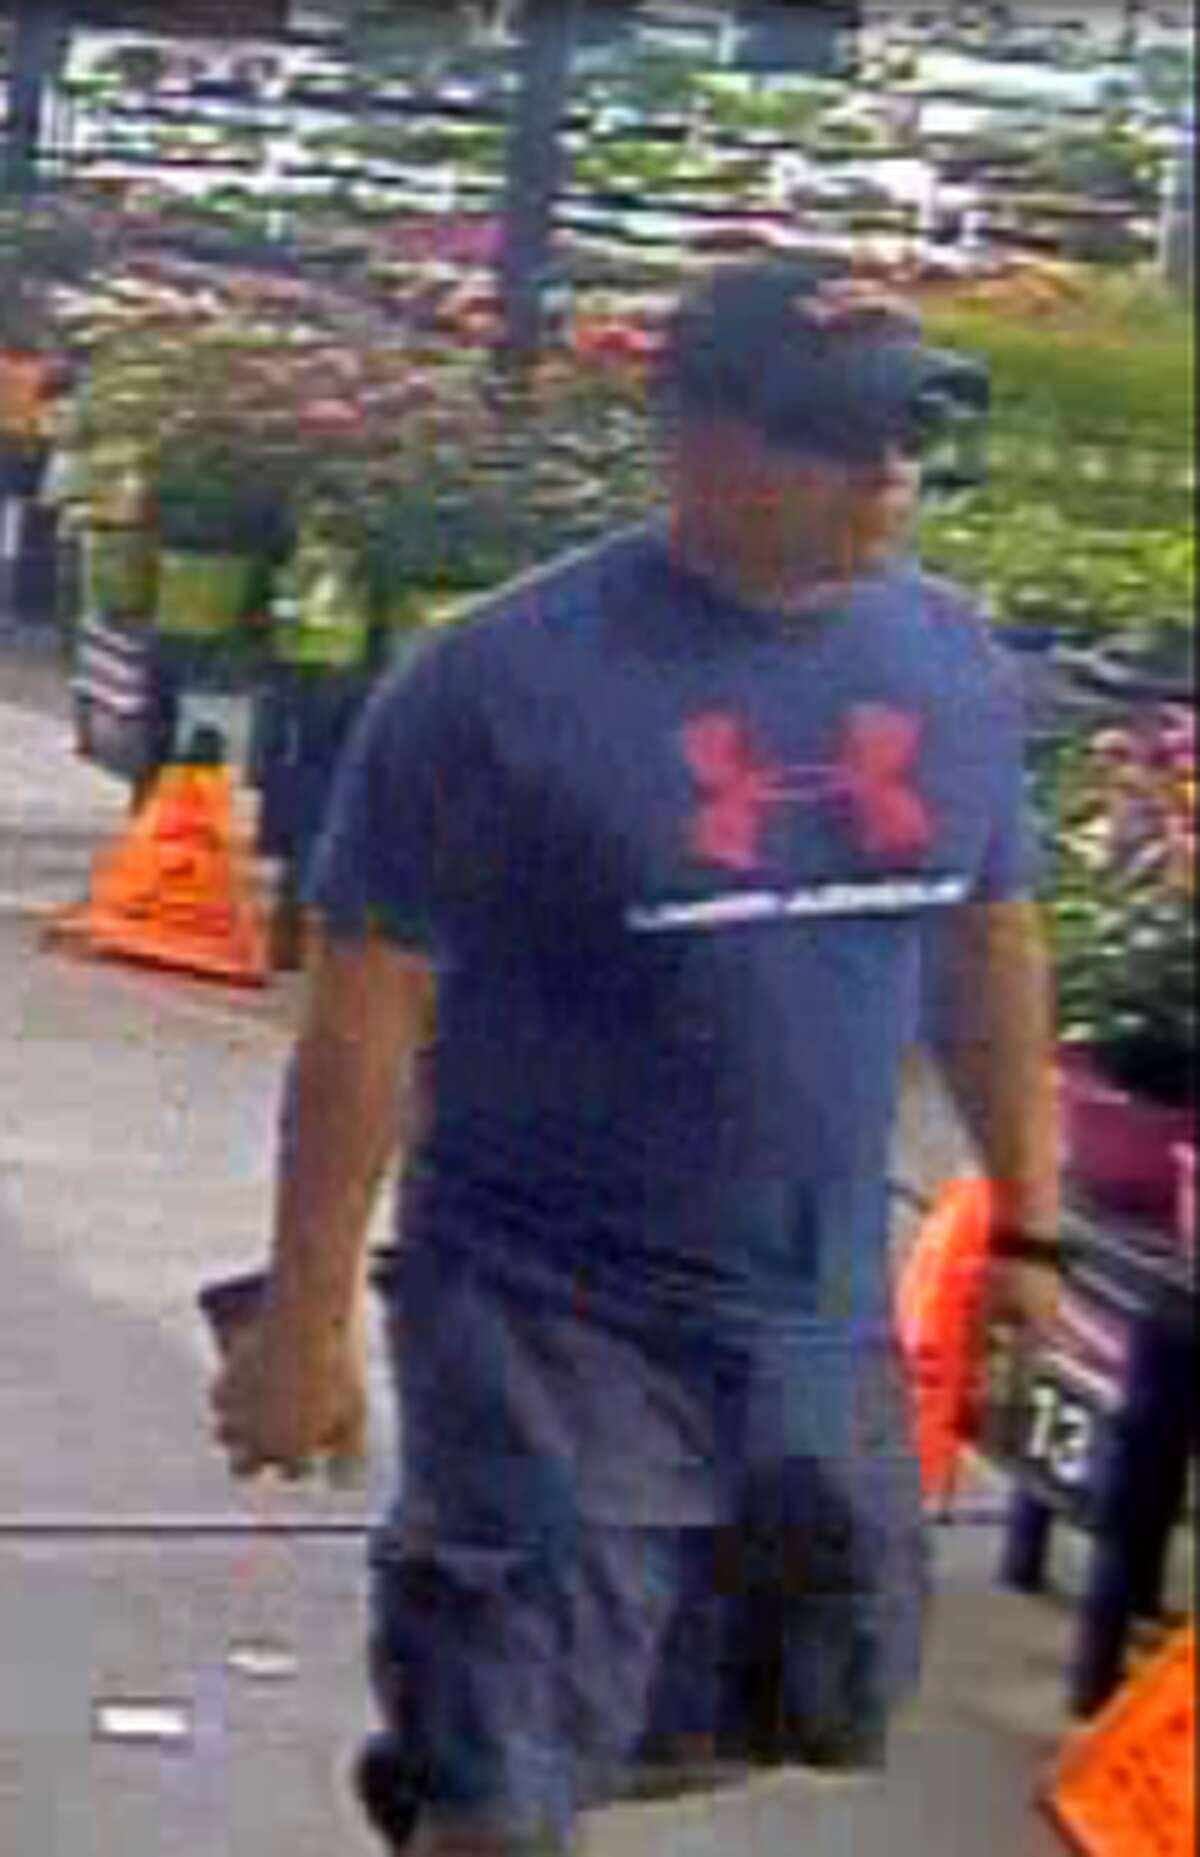 Authorities said this man is wanted in connection to a credit card abuse case.